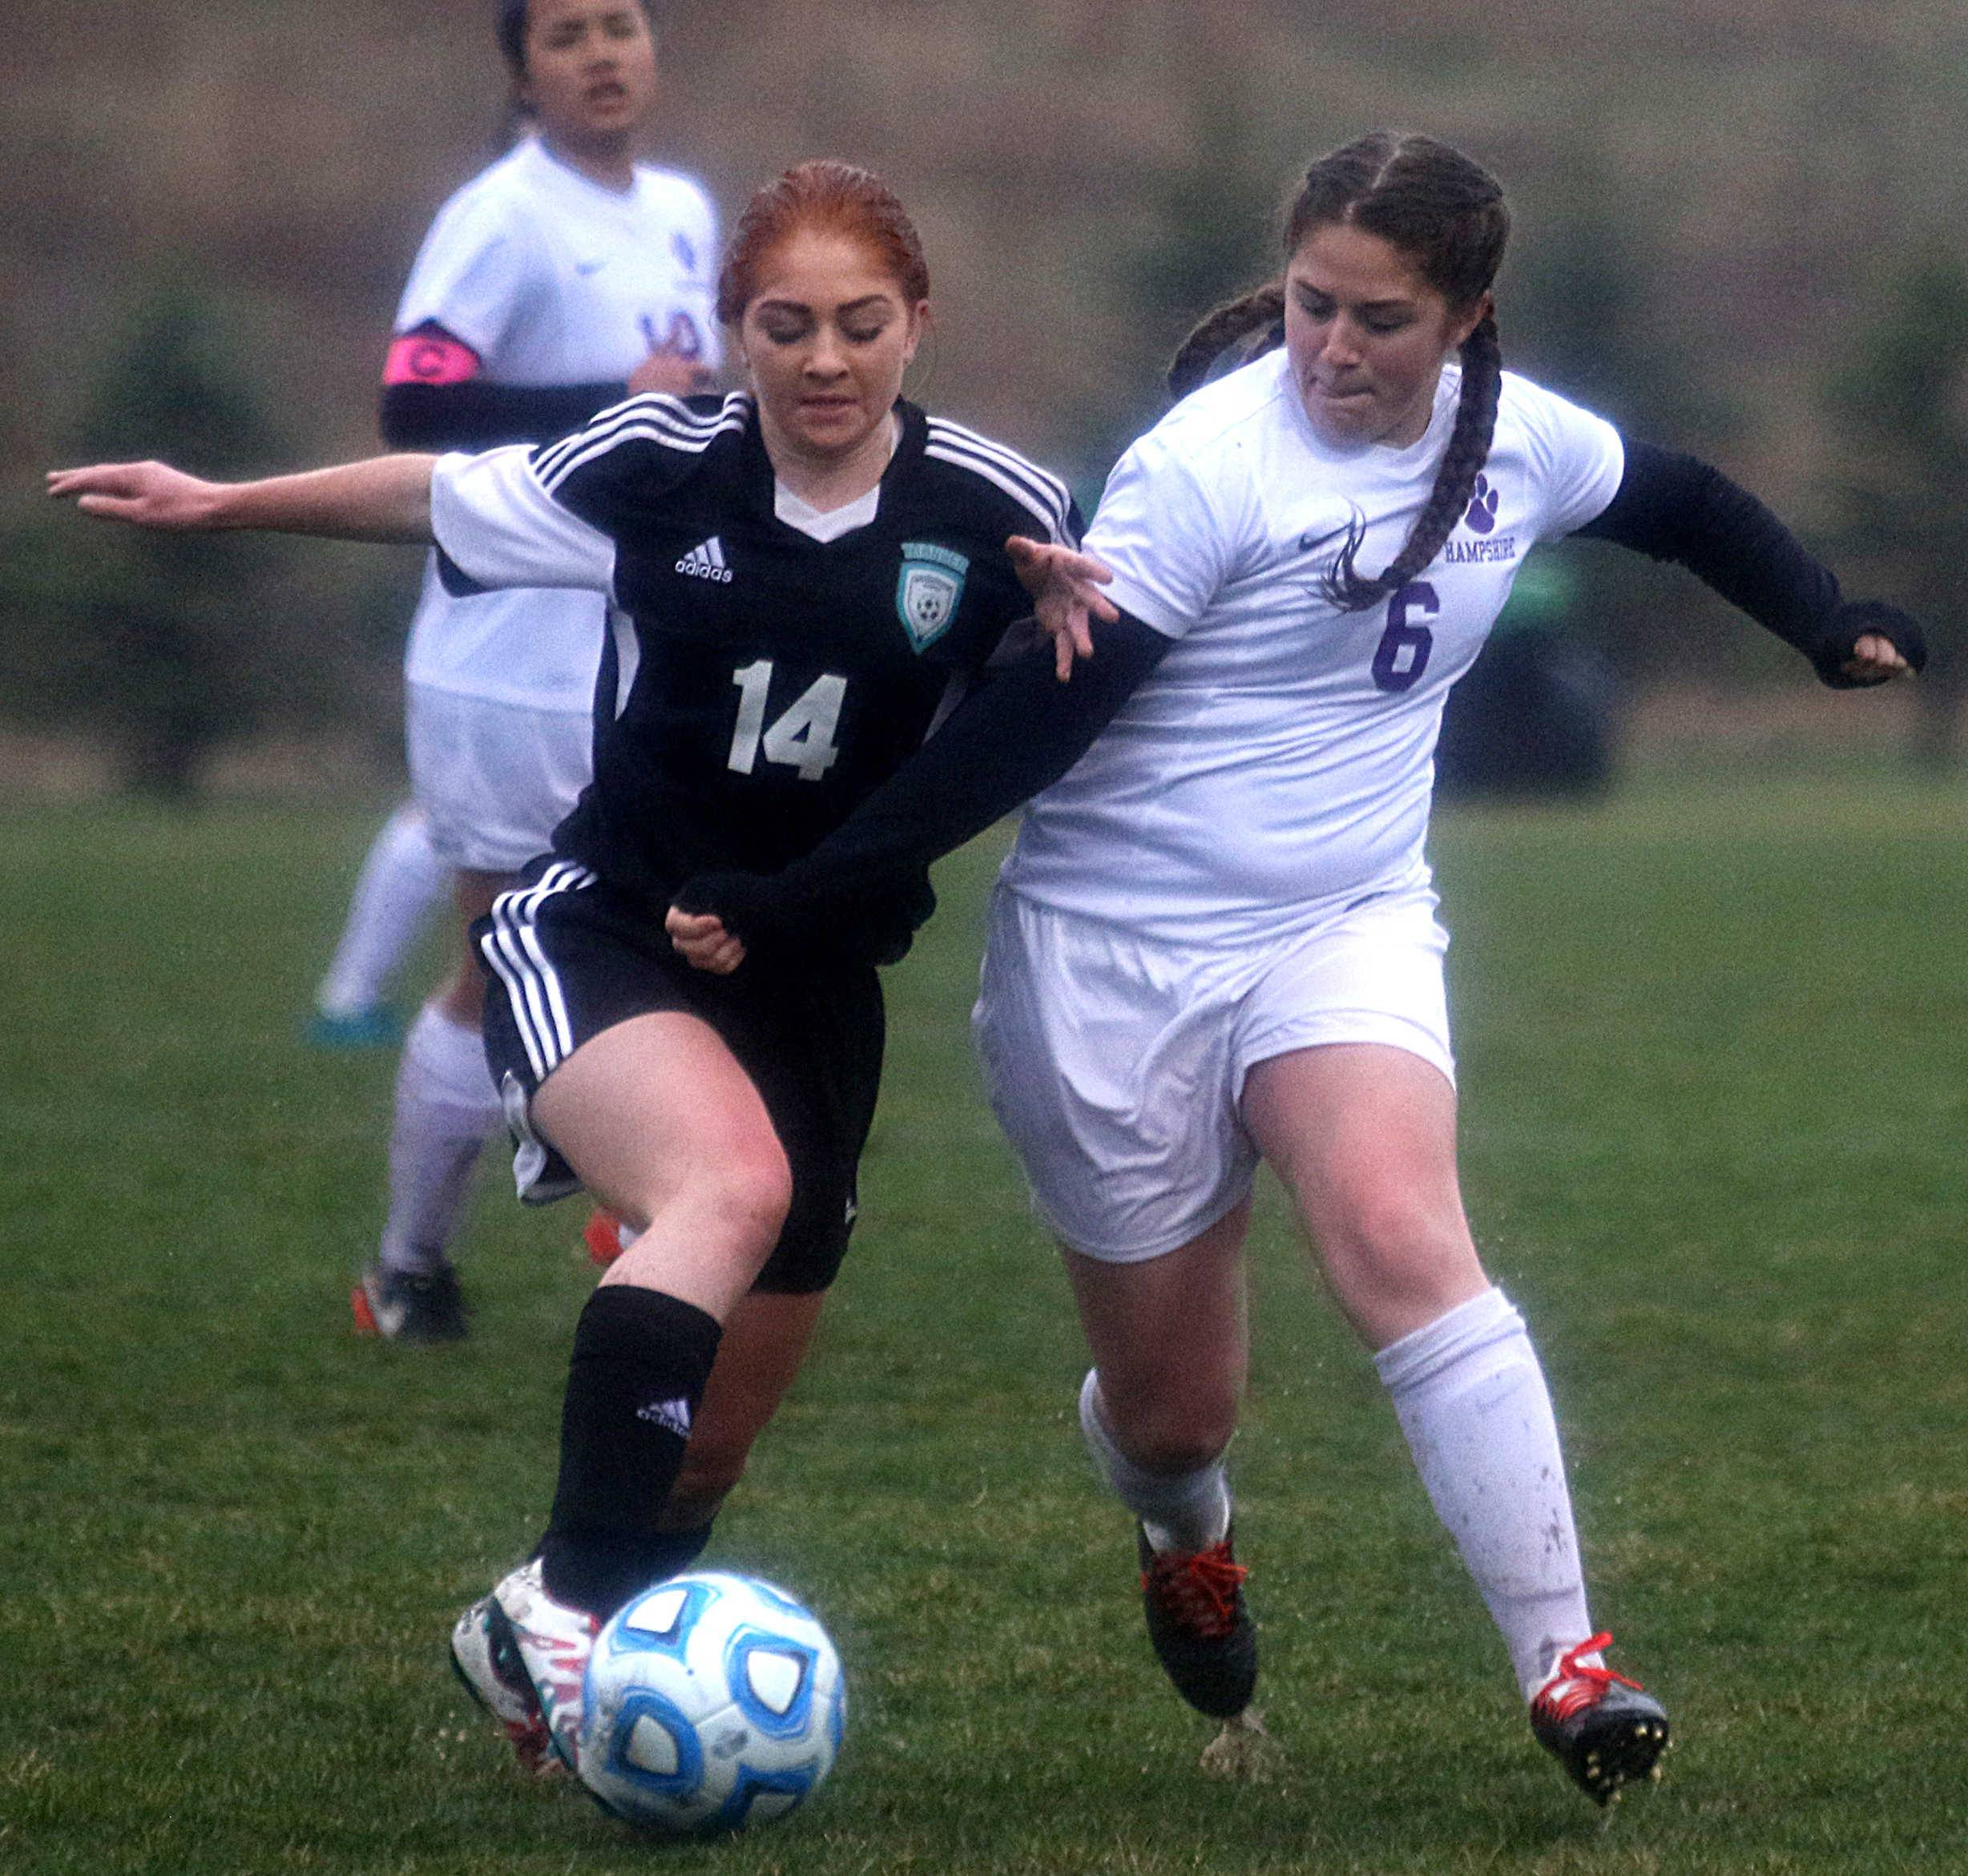 Hampshire's Sydney James, right, races Woodstock North's Anastasia Mazzanti for the ball during varsity girls soccer action at Hampshire Monday night.